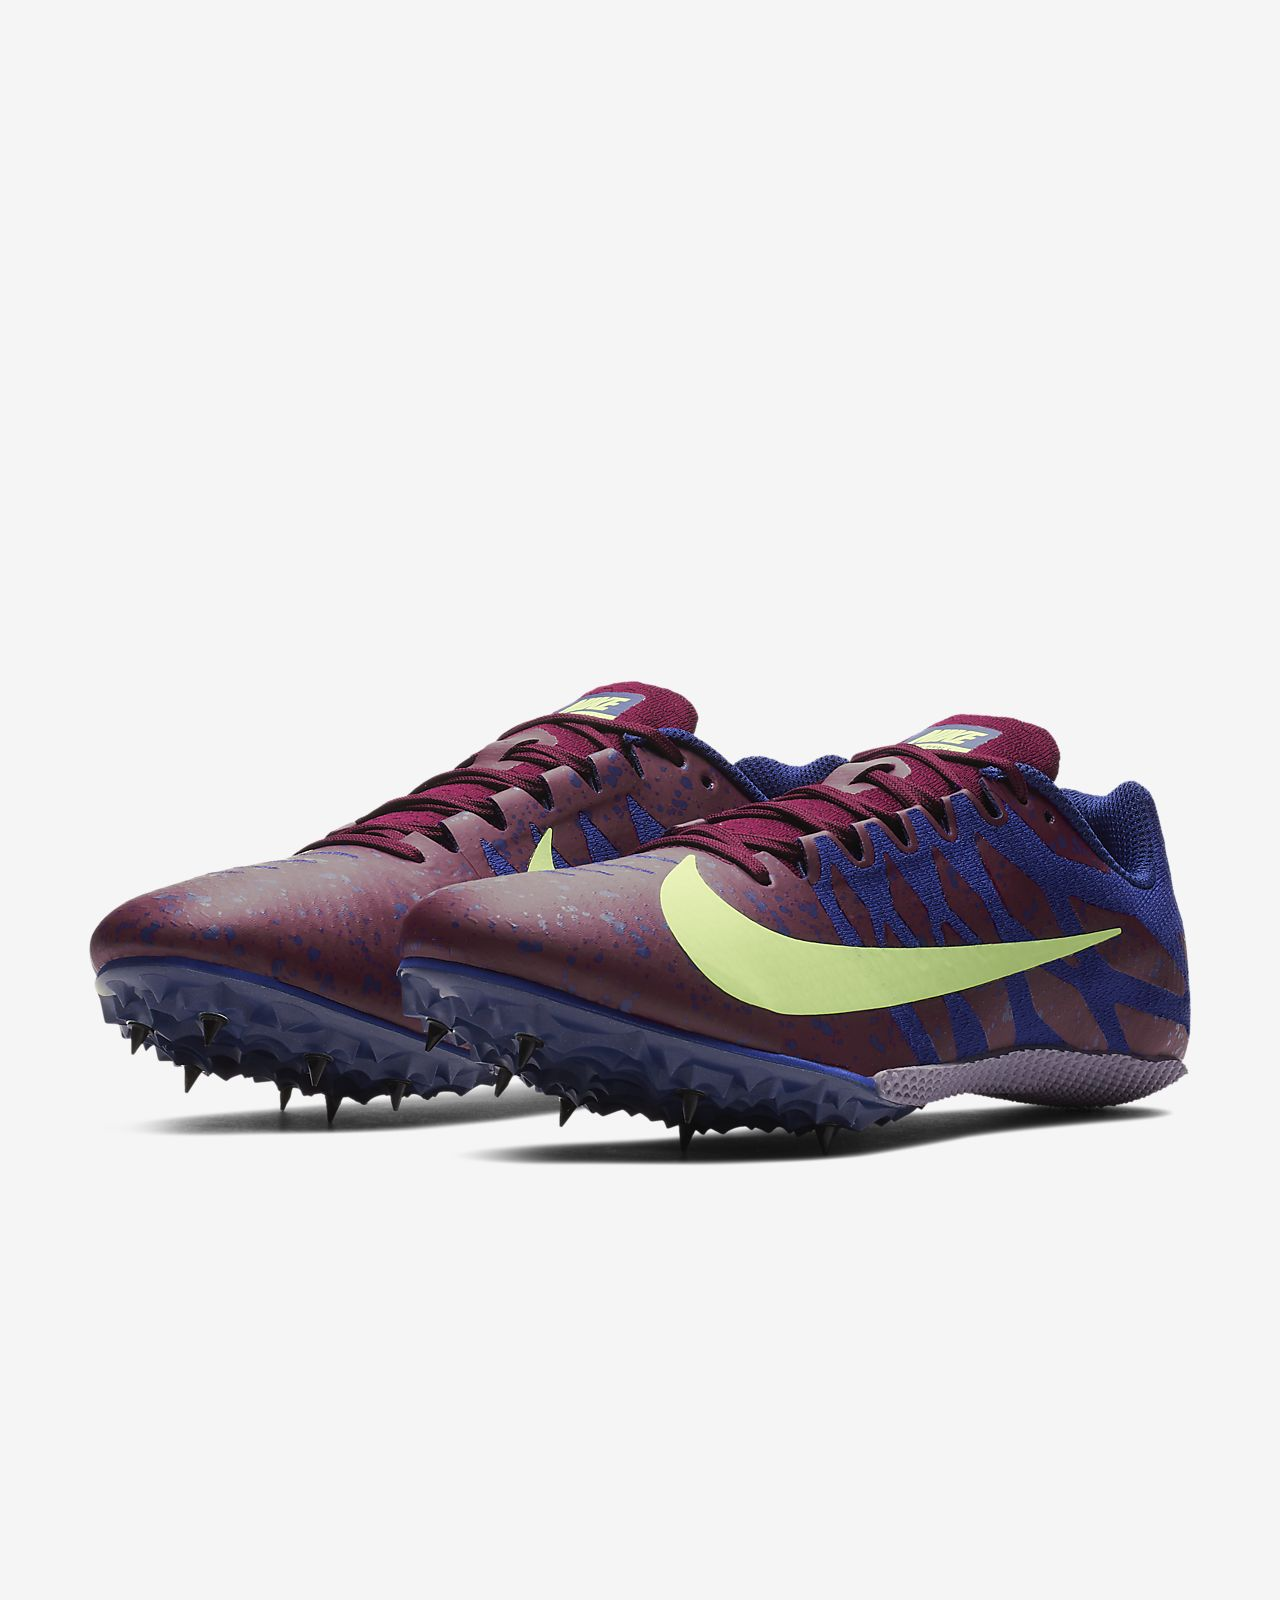 info for 5e0a5 86705 ... Nike Zoom Rival S 9 Unisex Track Spike